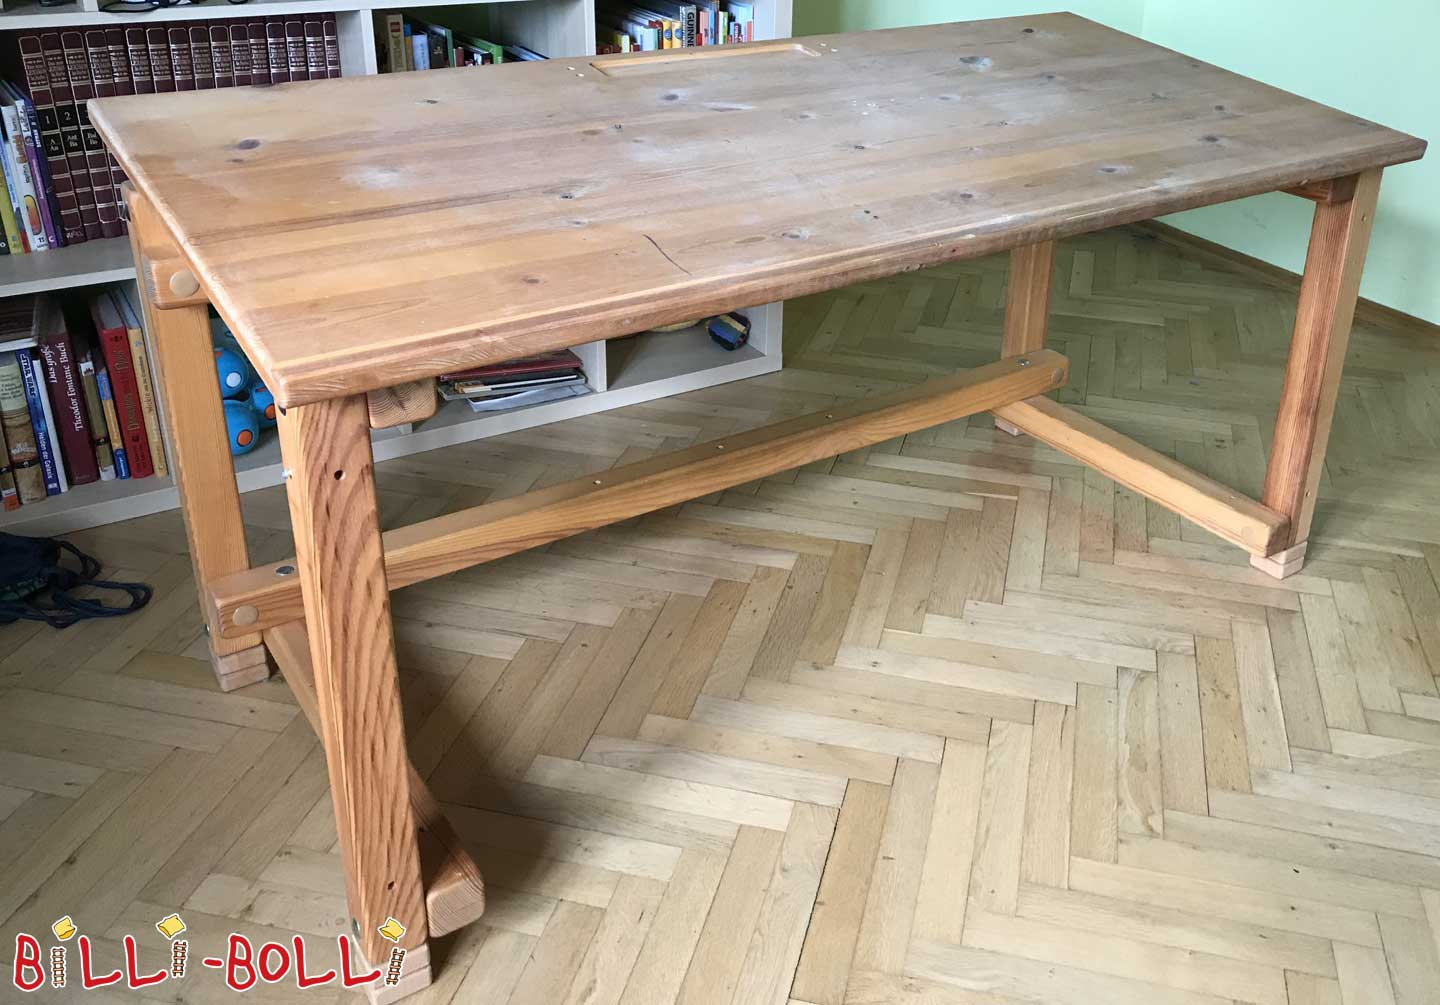 Desk 65 x 143 cm (second hand kids' furniture)